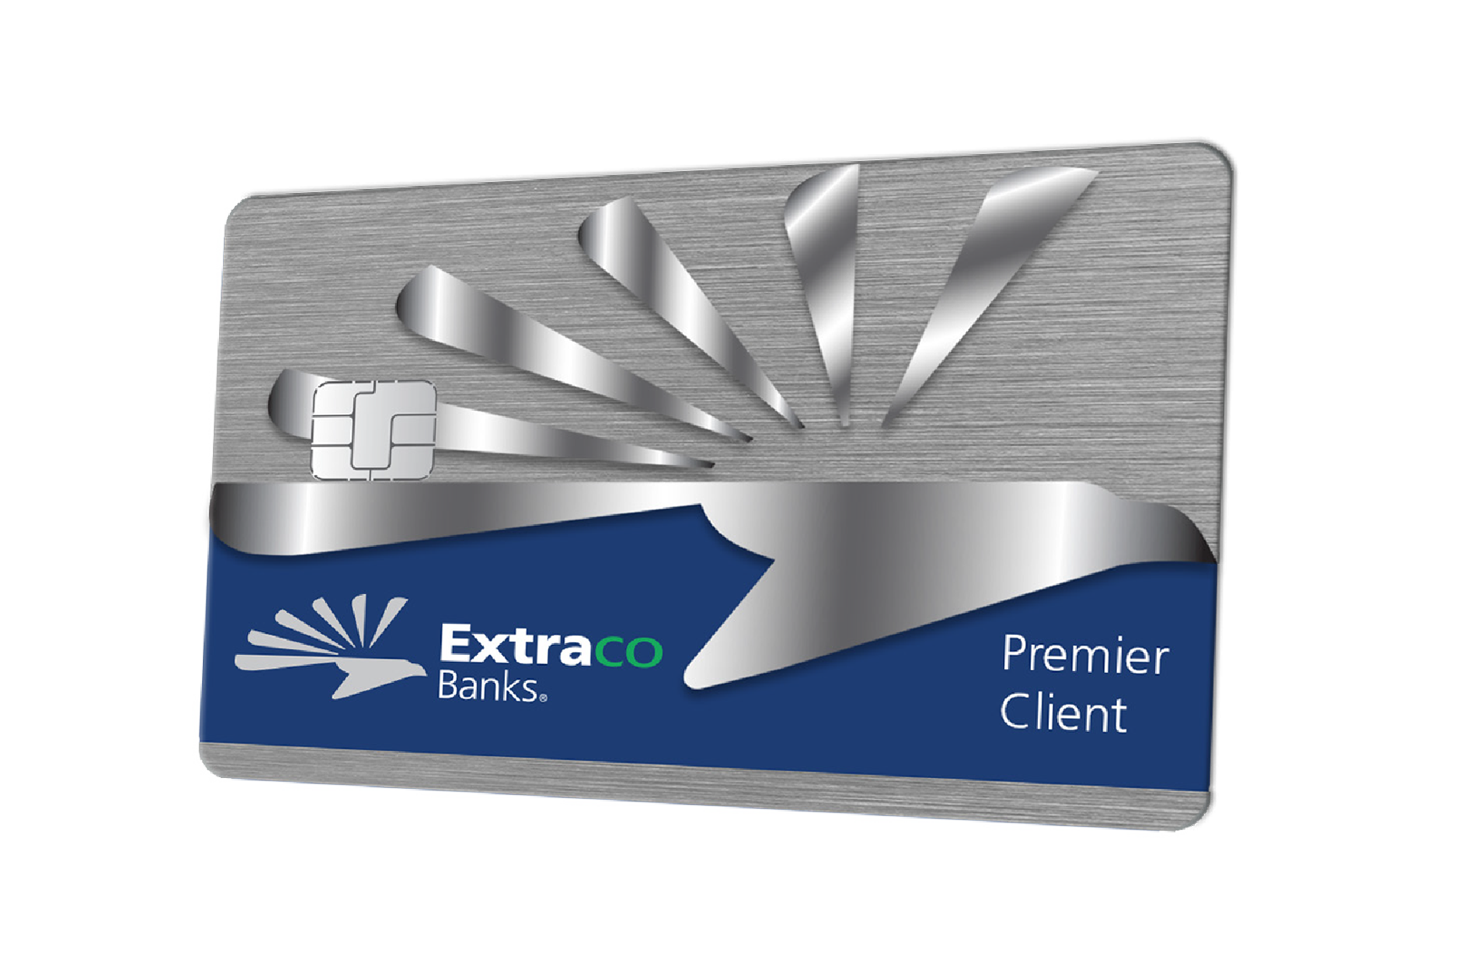 Extraco-premier-client-card